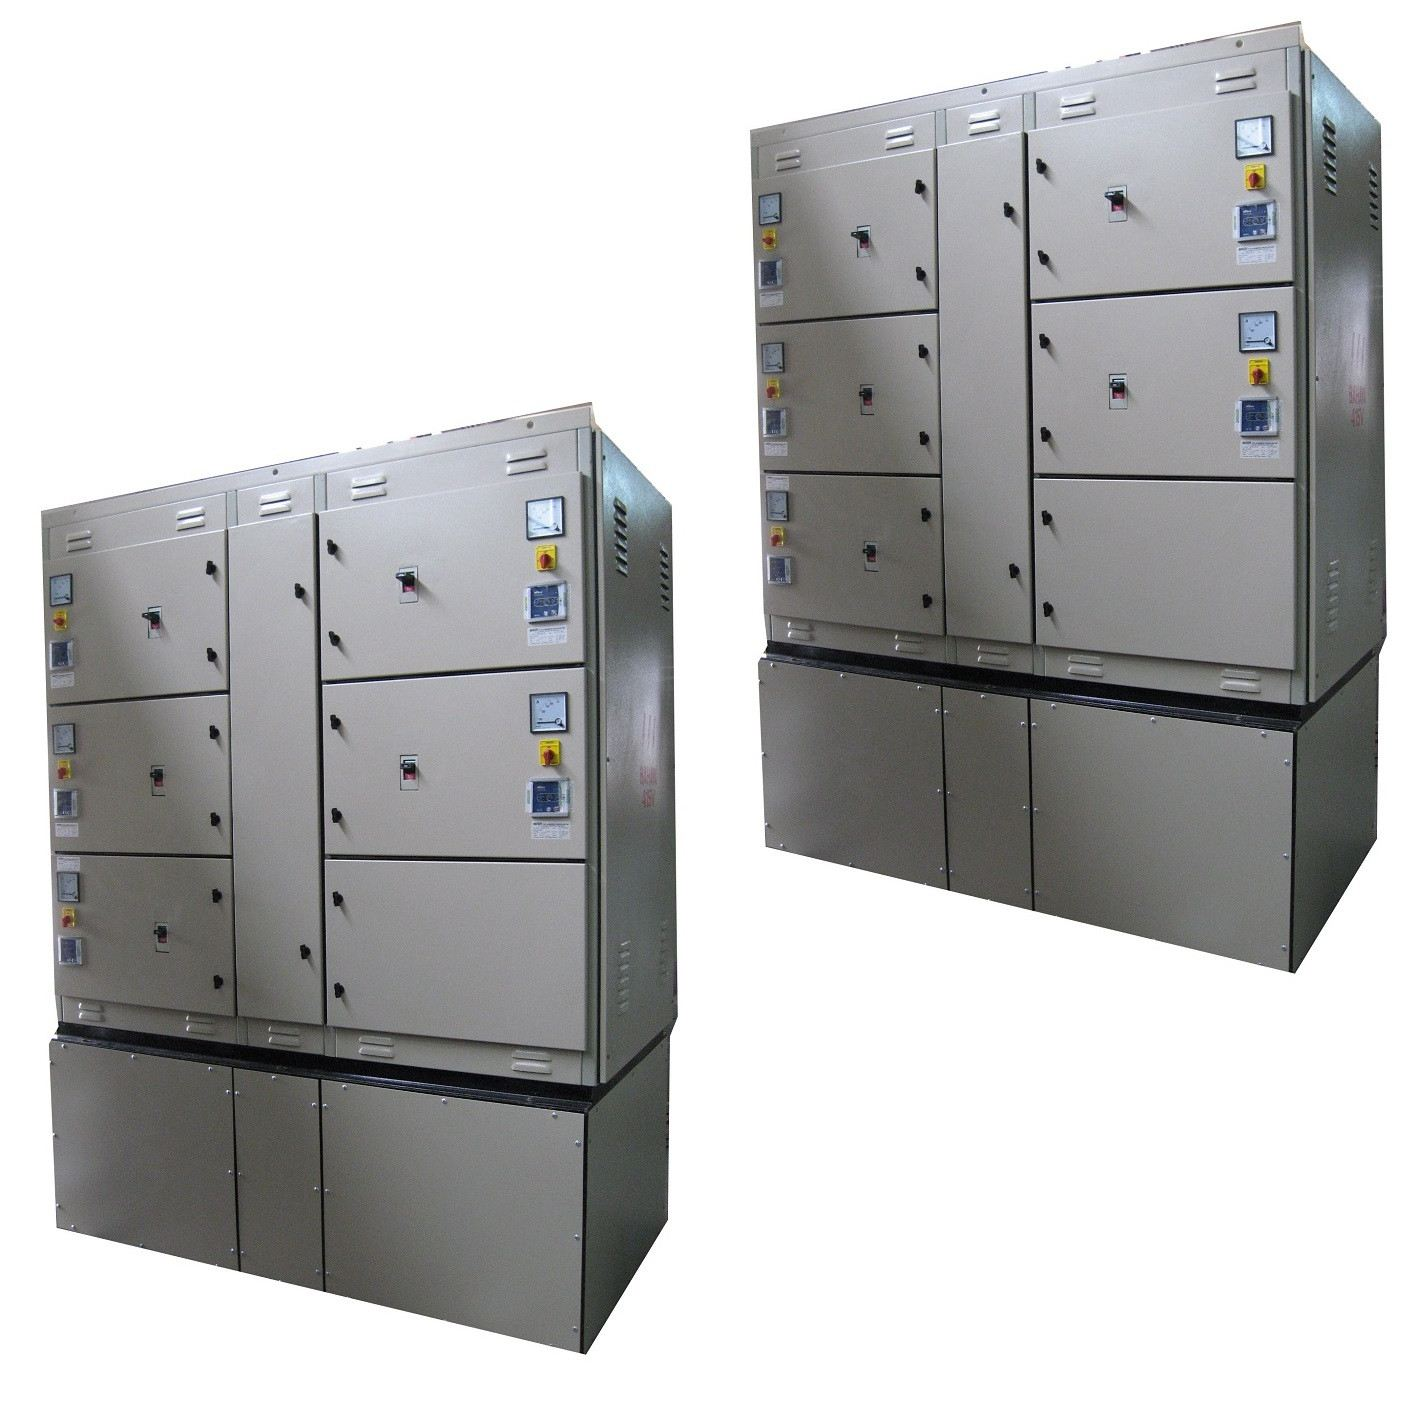 2.0mm Polycarbonate sheet Electrical Equipment & Supplies Power Distribution Equipment Stainless Steel Sub Switchboard (sb)